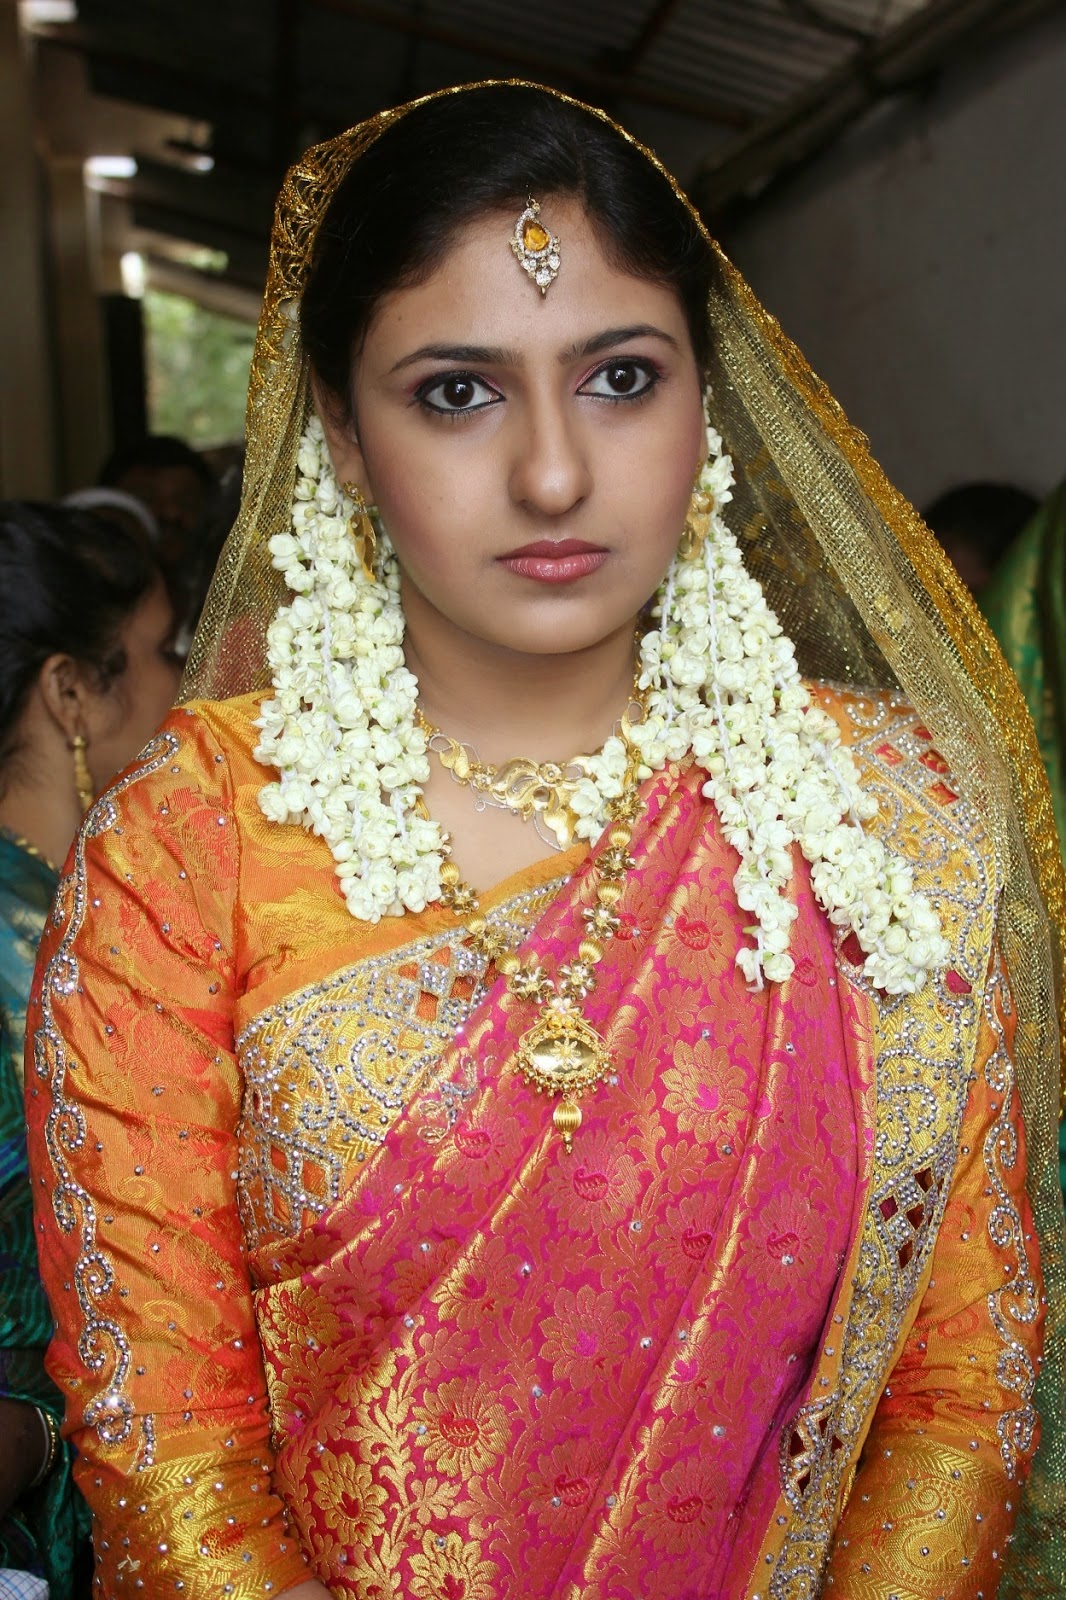 Piyali ganguly marriage registrar in chandigarh